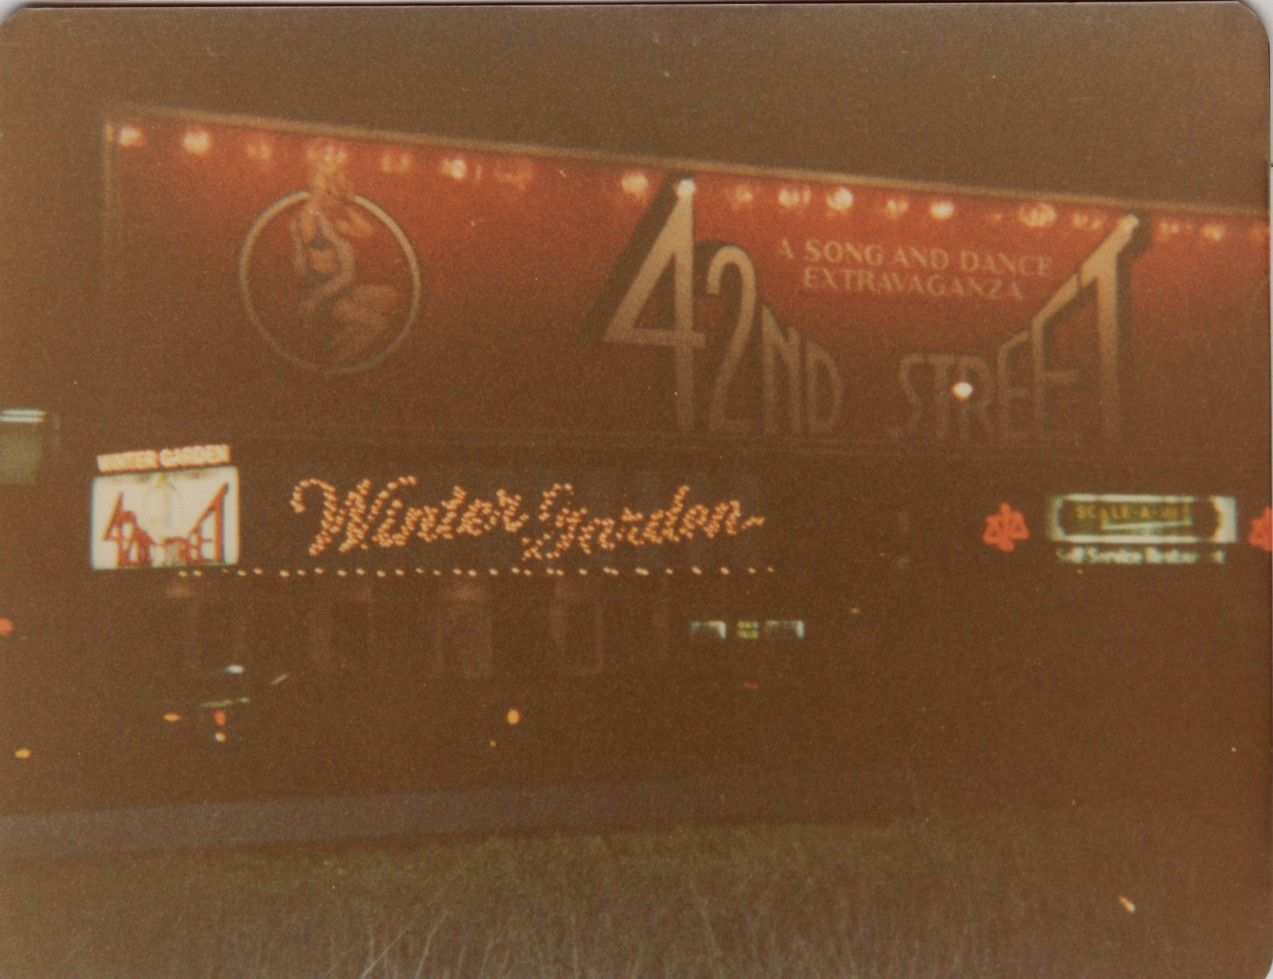 42nd street at the winter garden theatre nyc december 1980